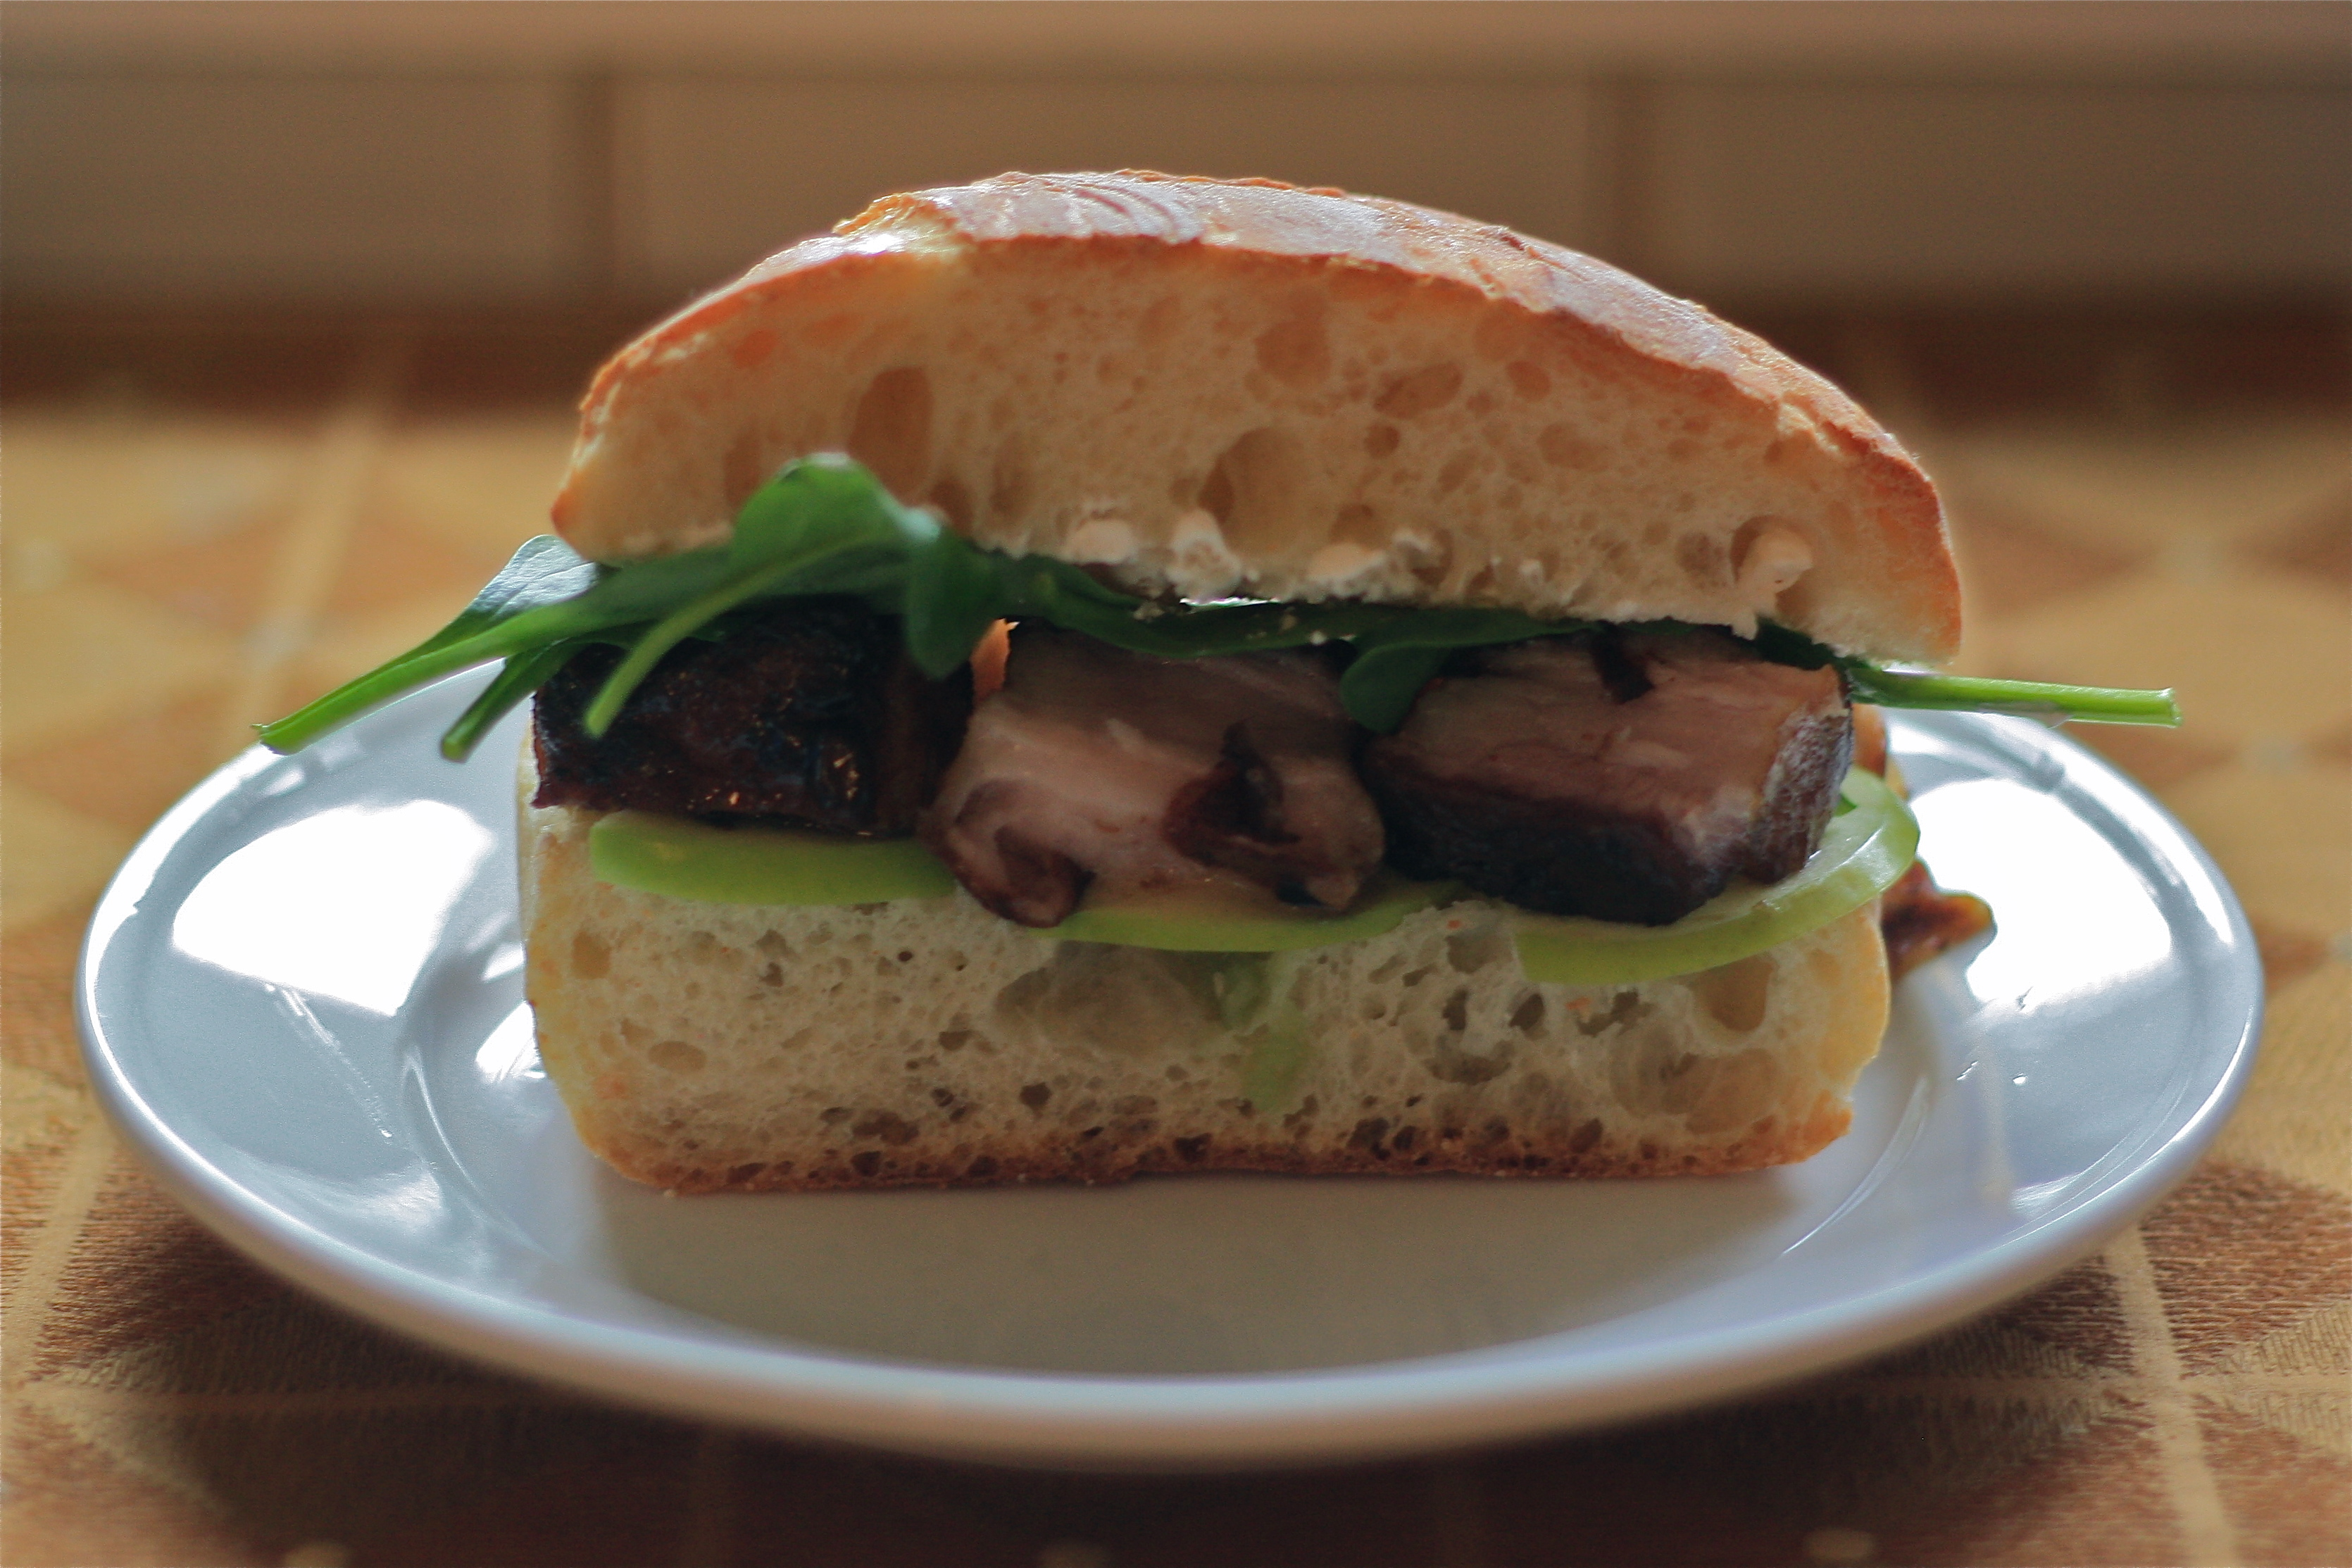 Braised pork sandwich recipe